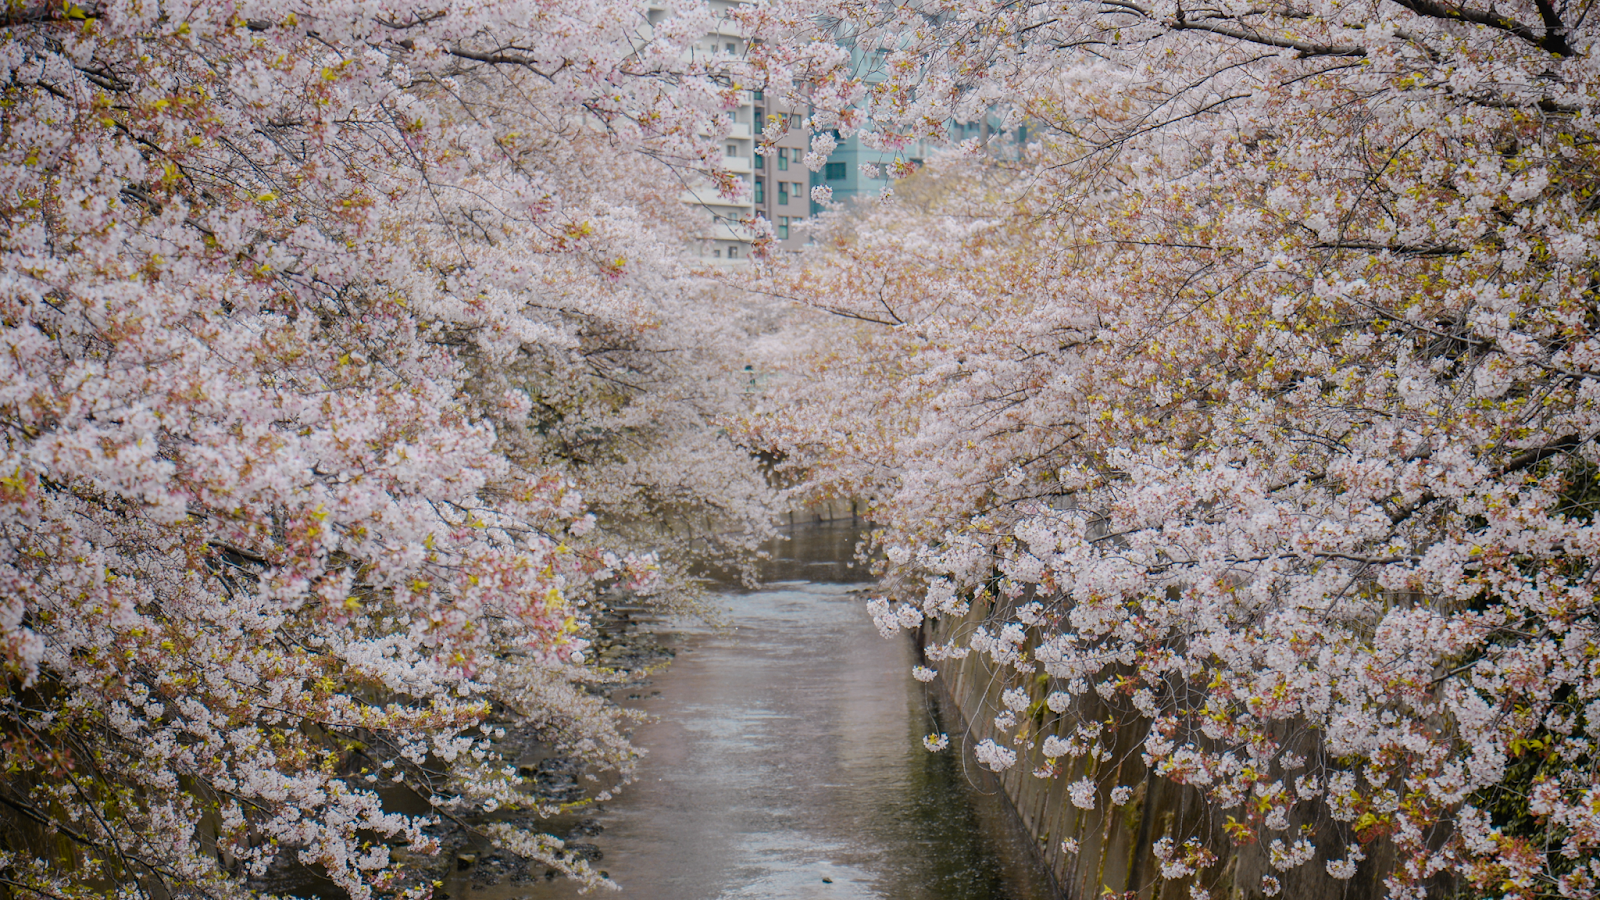 Best photo spot for cherry blossoms in Tokyo, Tokyo's Not So Secret Cherry Blossoms Spots That You Might Not Know Of - Style and Travel Blogger Van Le (FOREVERVANNY.com)